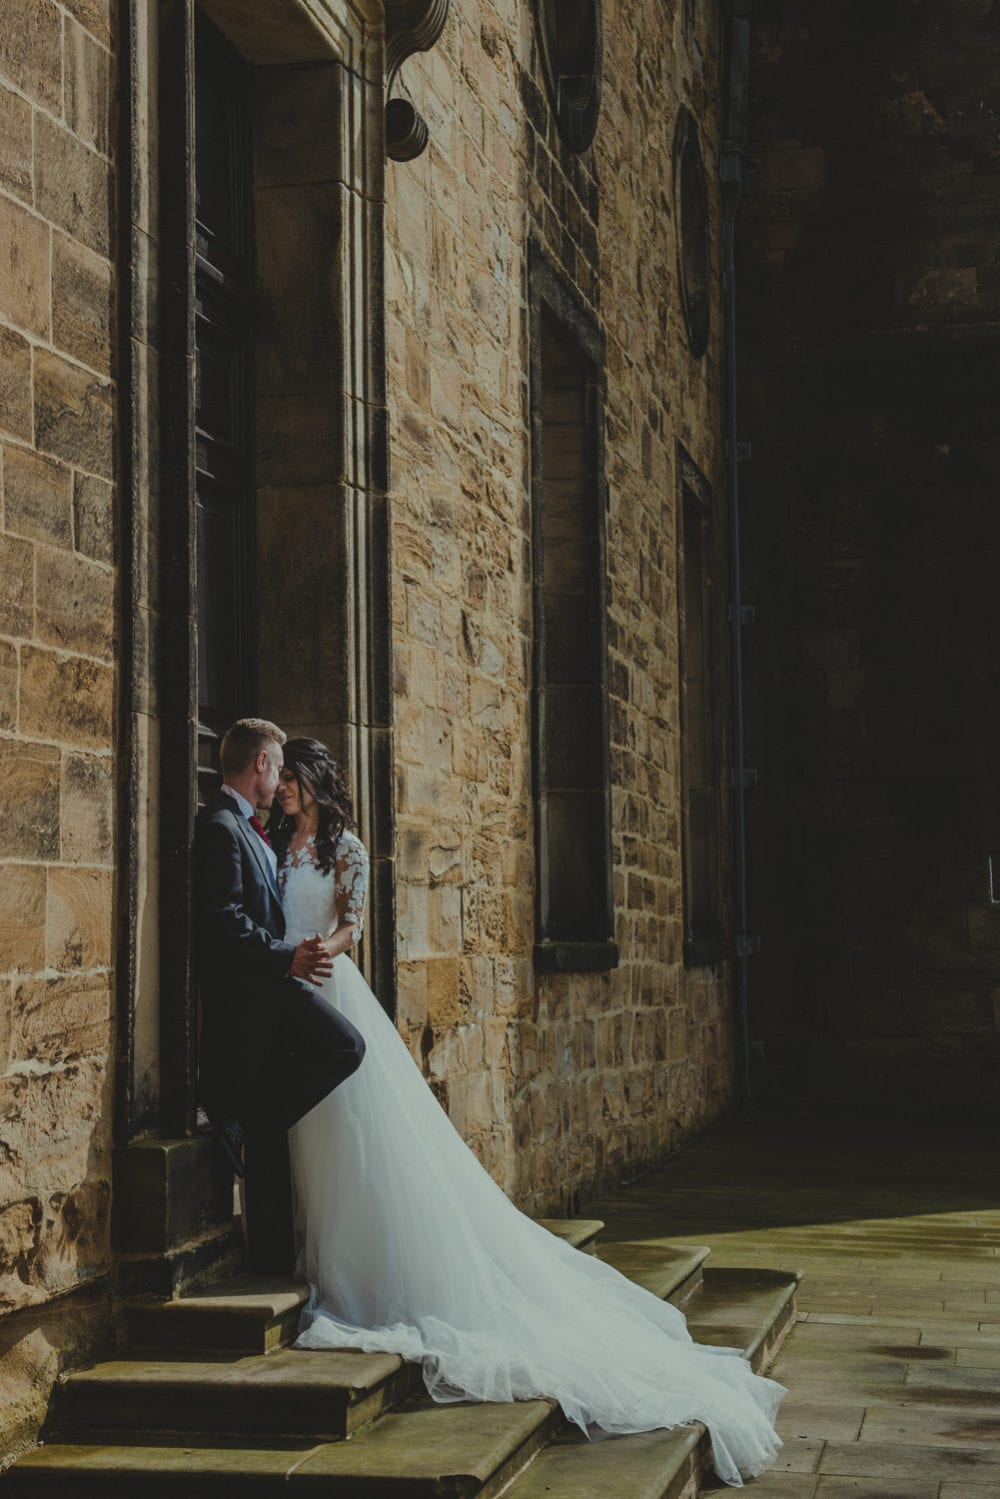 Best of Newcastle Wedding Photography 2019